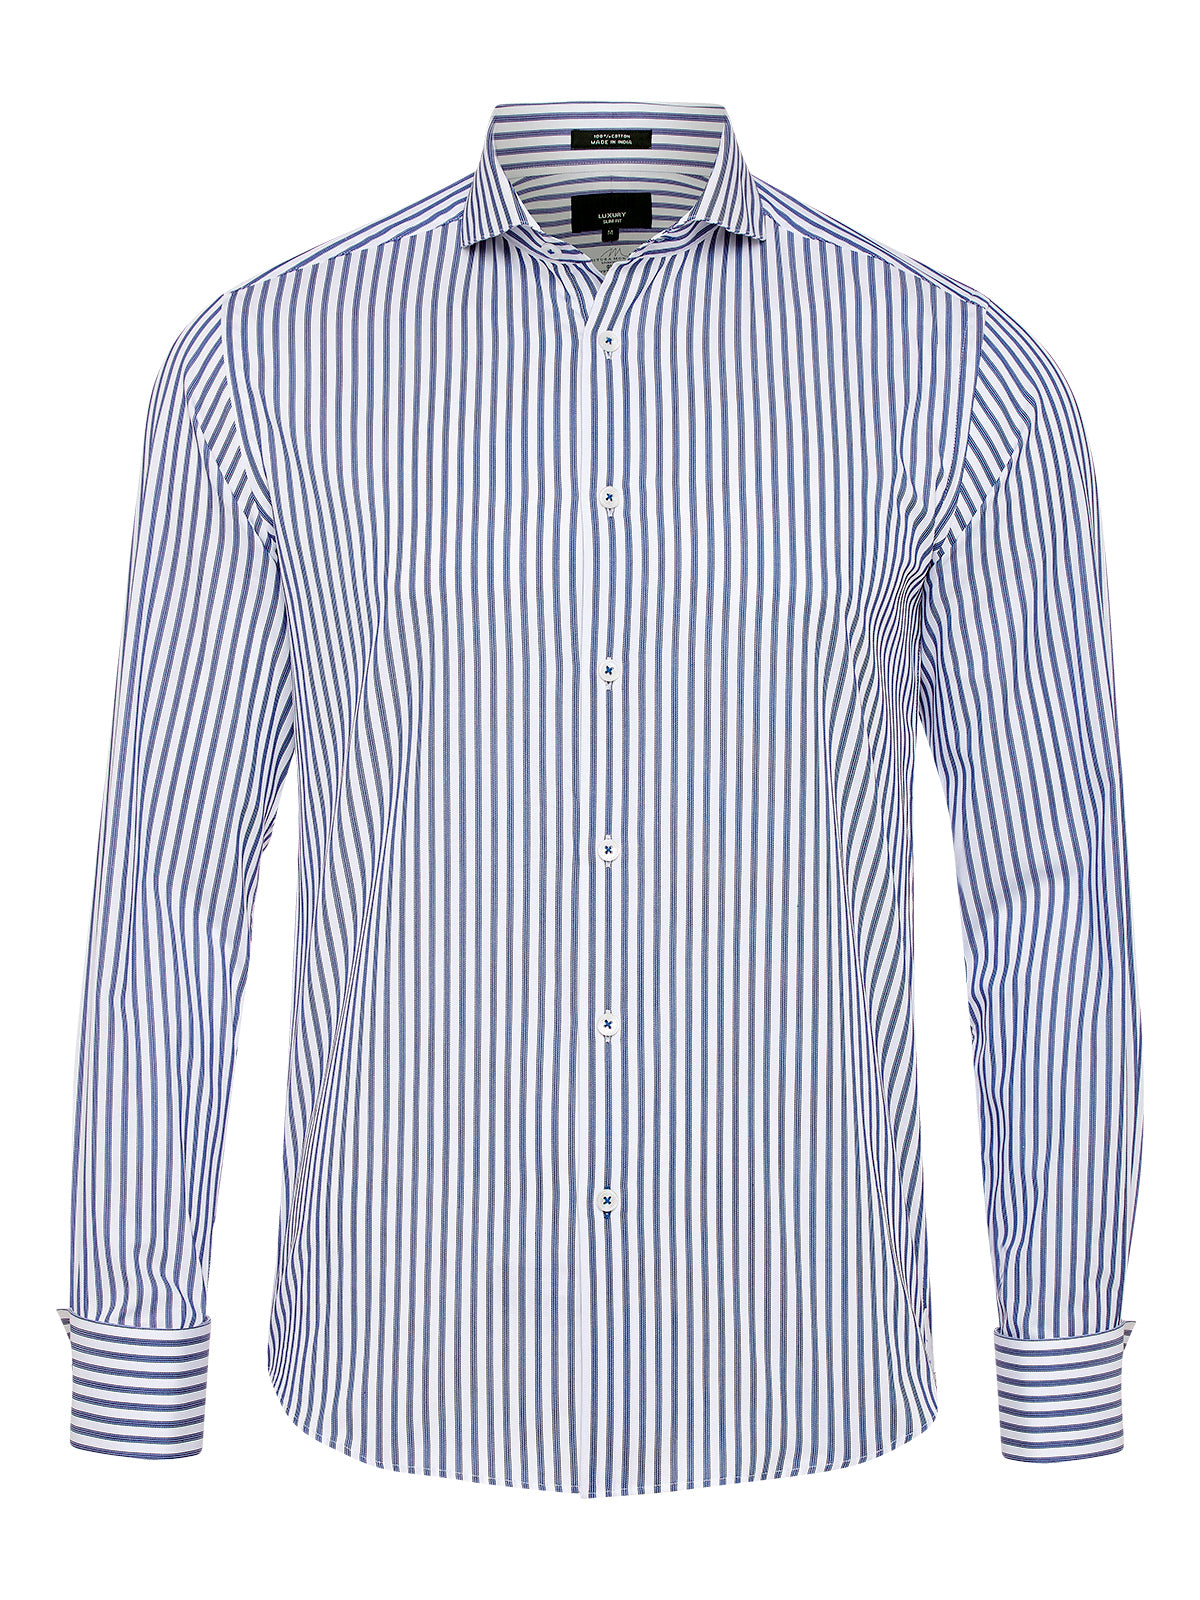 KENSINGTON F/C STRPE LUXURY SHIRT